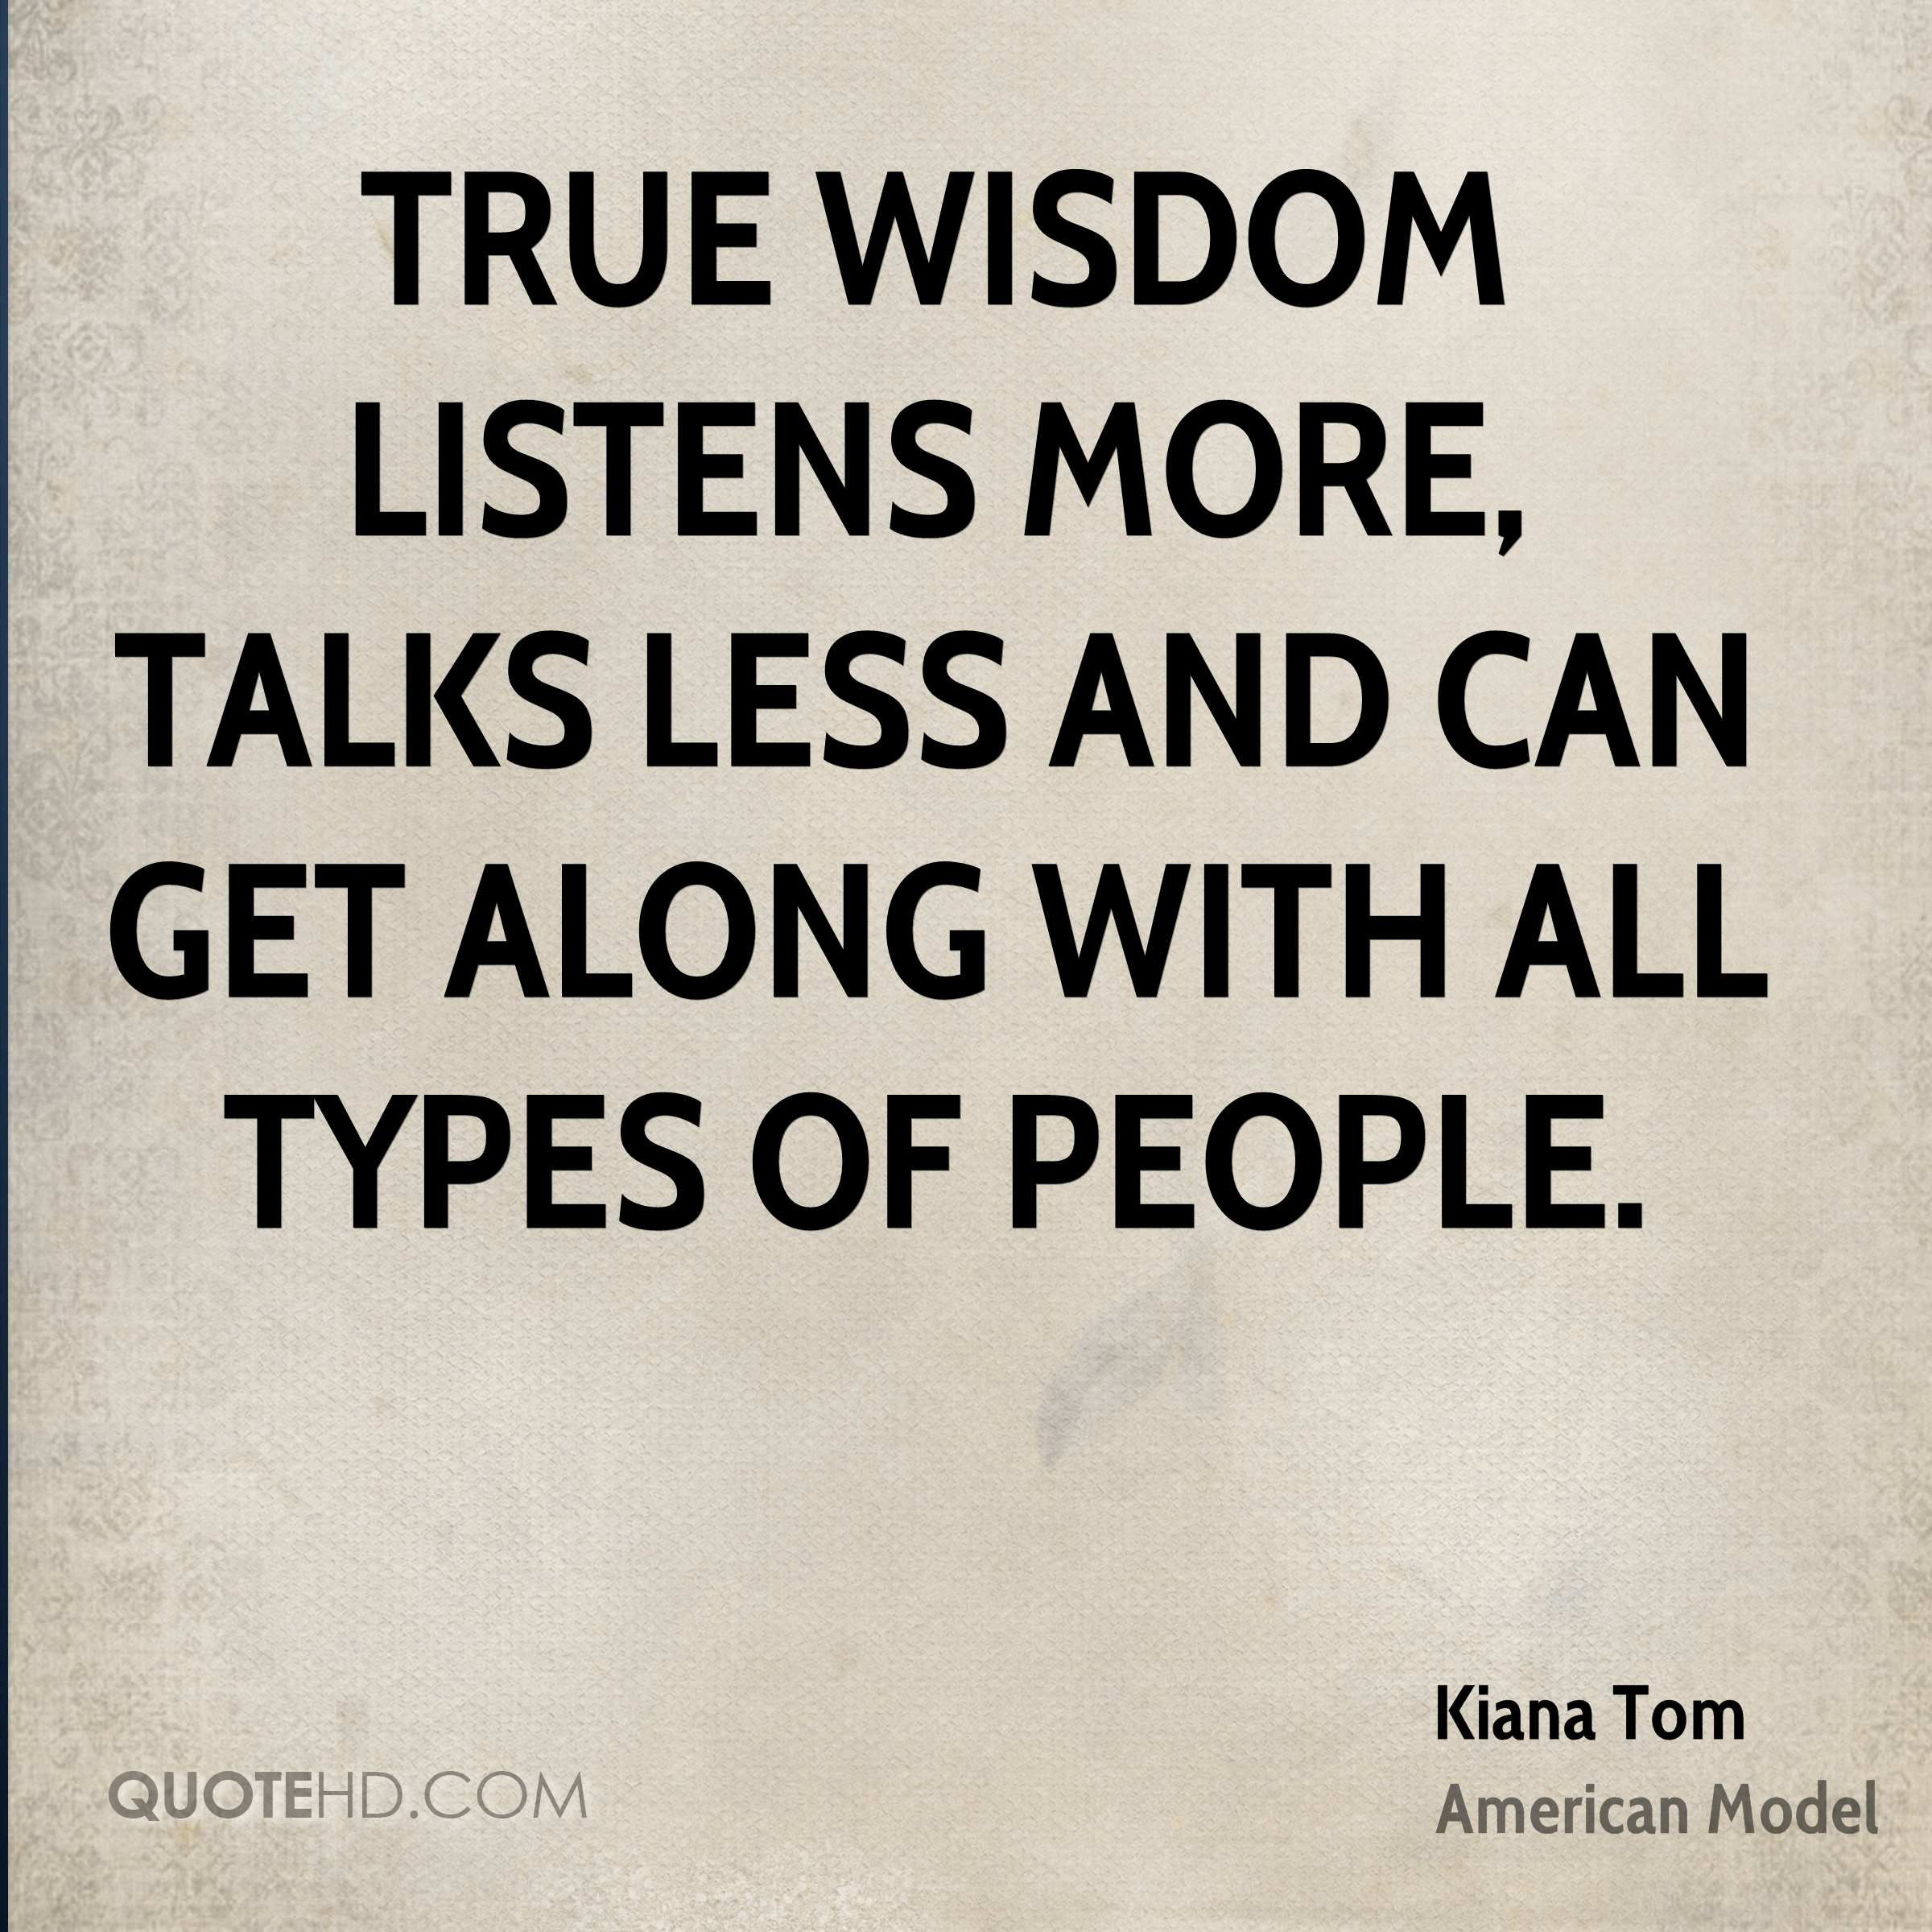 True wisdom listens more, talks less and can get along with all types of people.